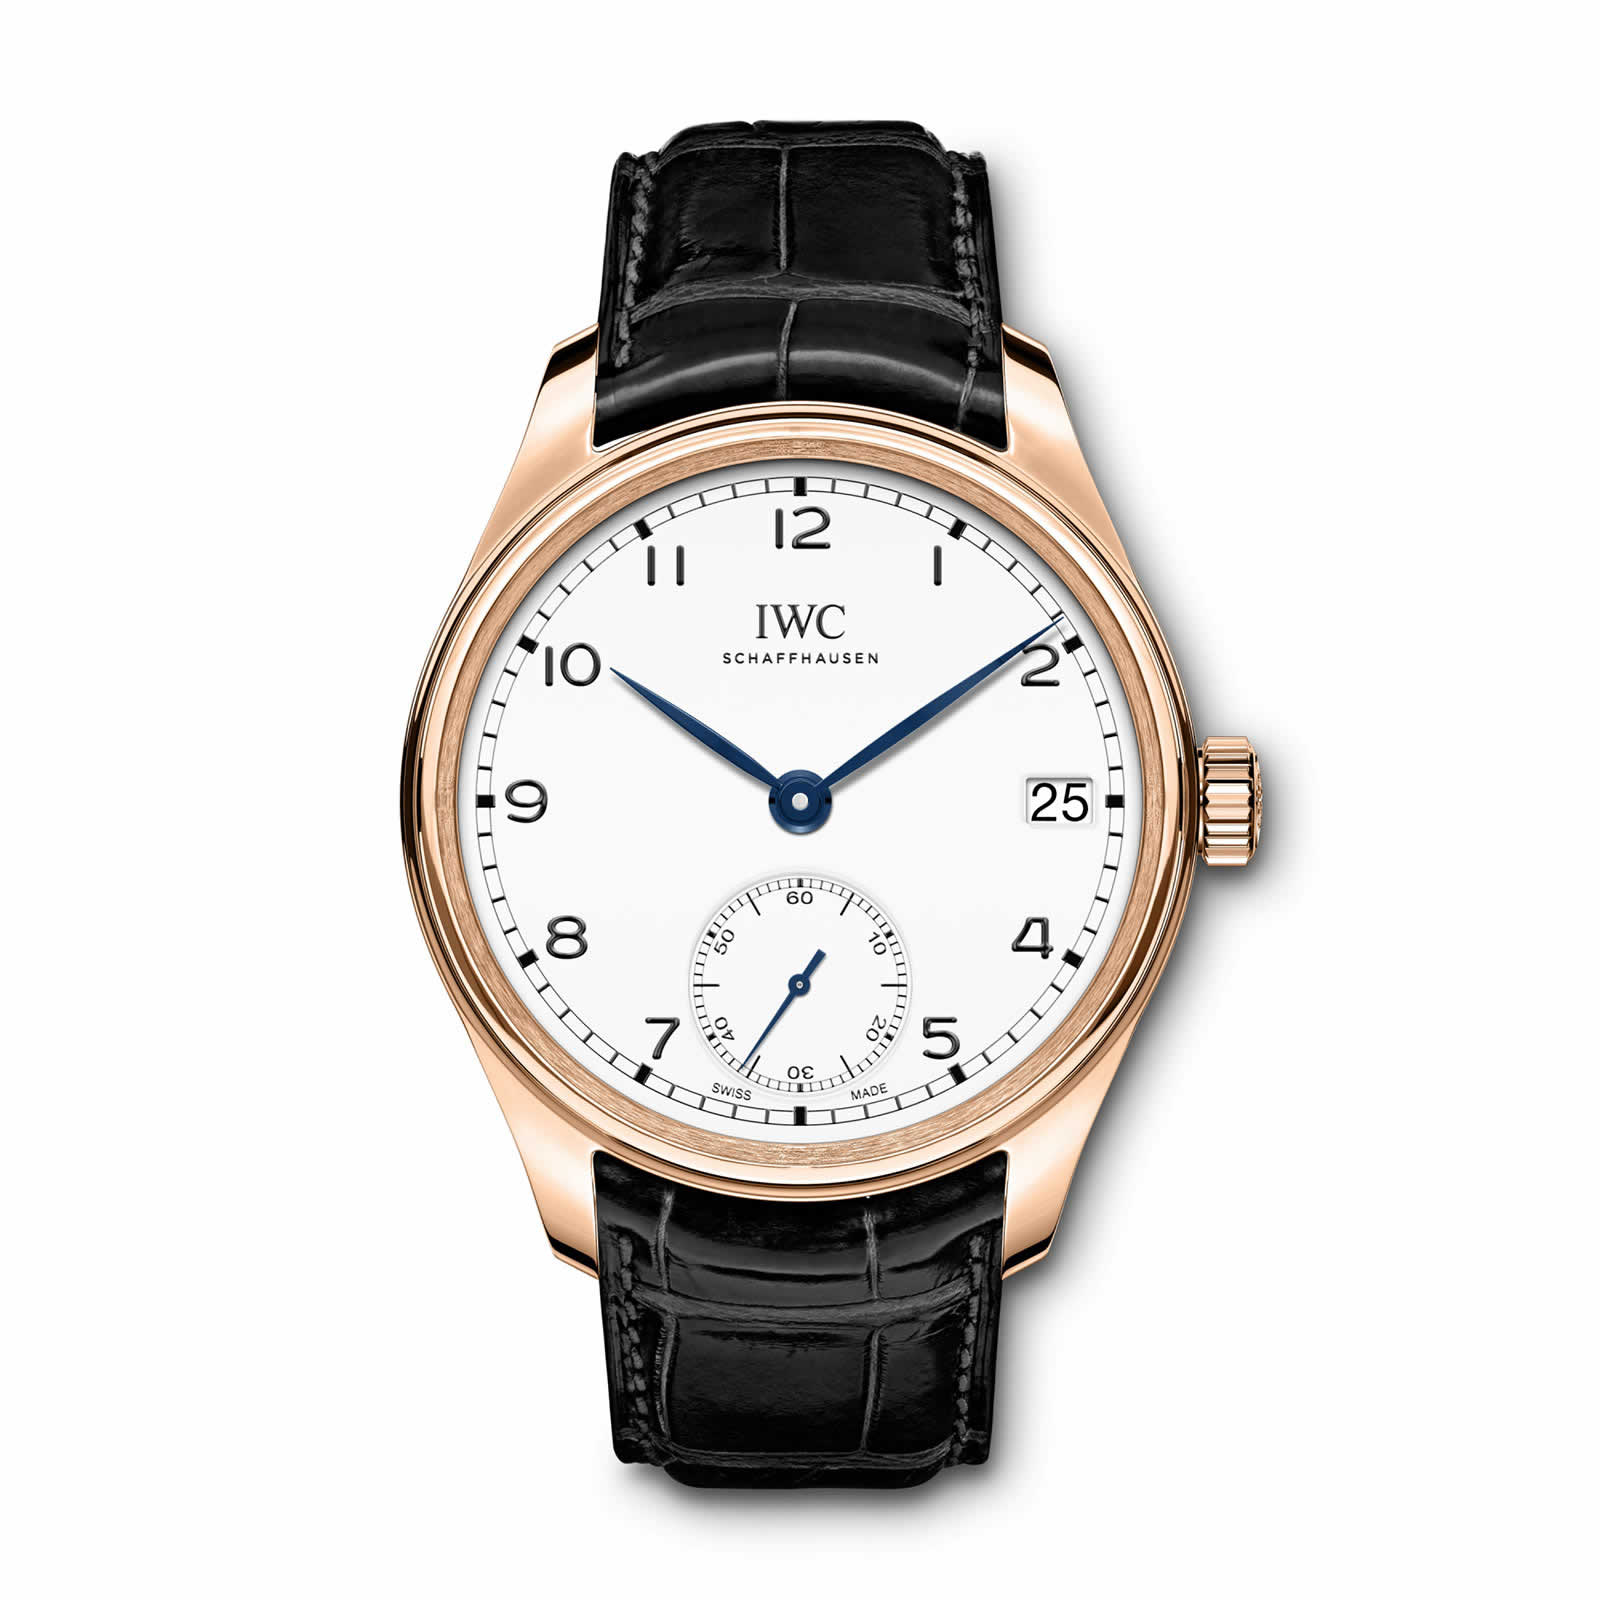 iwc-sihh2018-jubilee-collections-front.jpg